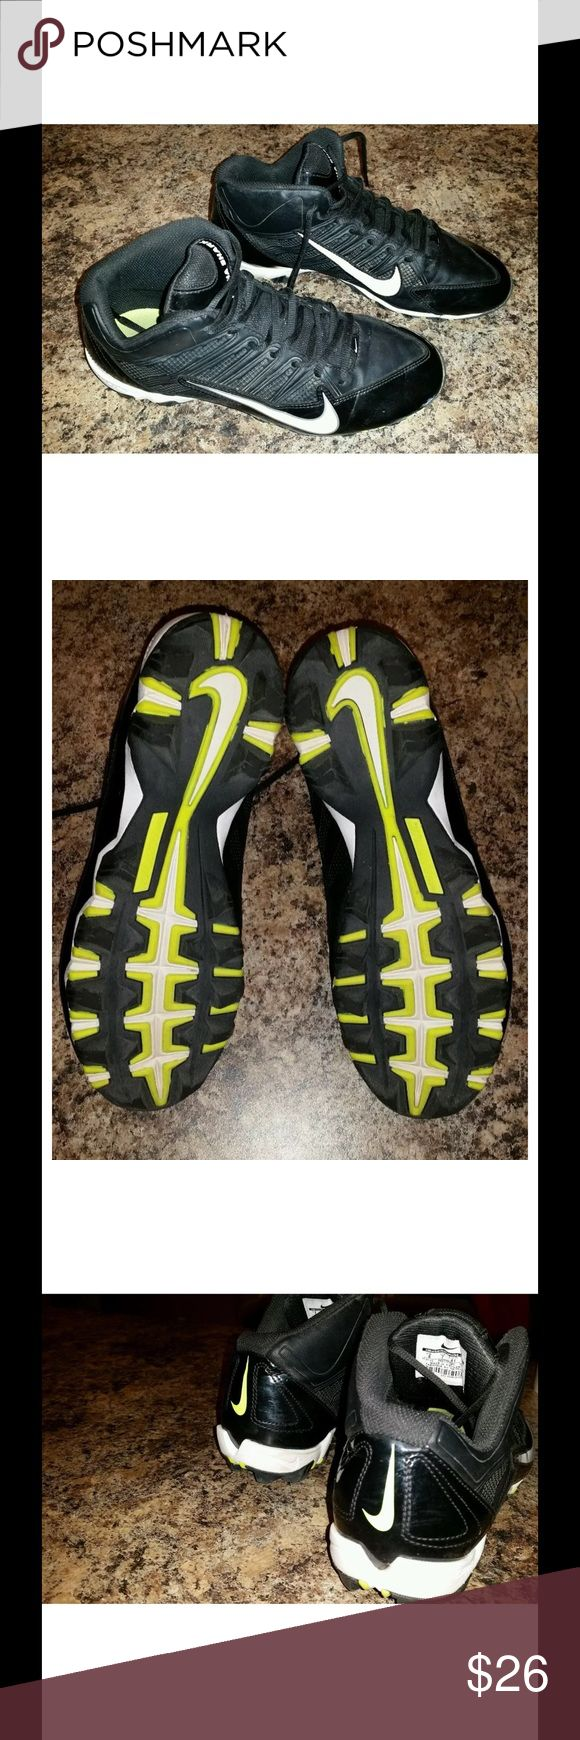 Mens Nike alpha shark football cleats sz: 8 For sale is a pair of Nike, Alpha shark, men's football cleats. These are black, white, and yellow.   These are a men's size 8   My son wore these for one season of flag football, his feet have grown since the spring season and he needs a new pair for The Fall season.   These cleats still have a lot of football left in them. If you have any questions or would like additional photos please feel free to ask. Nike Shoes